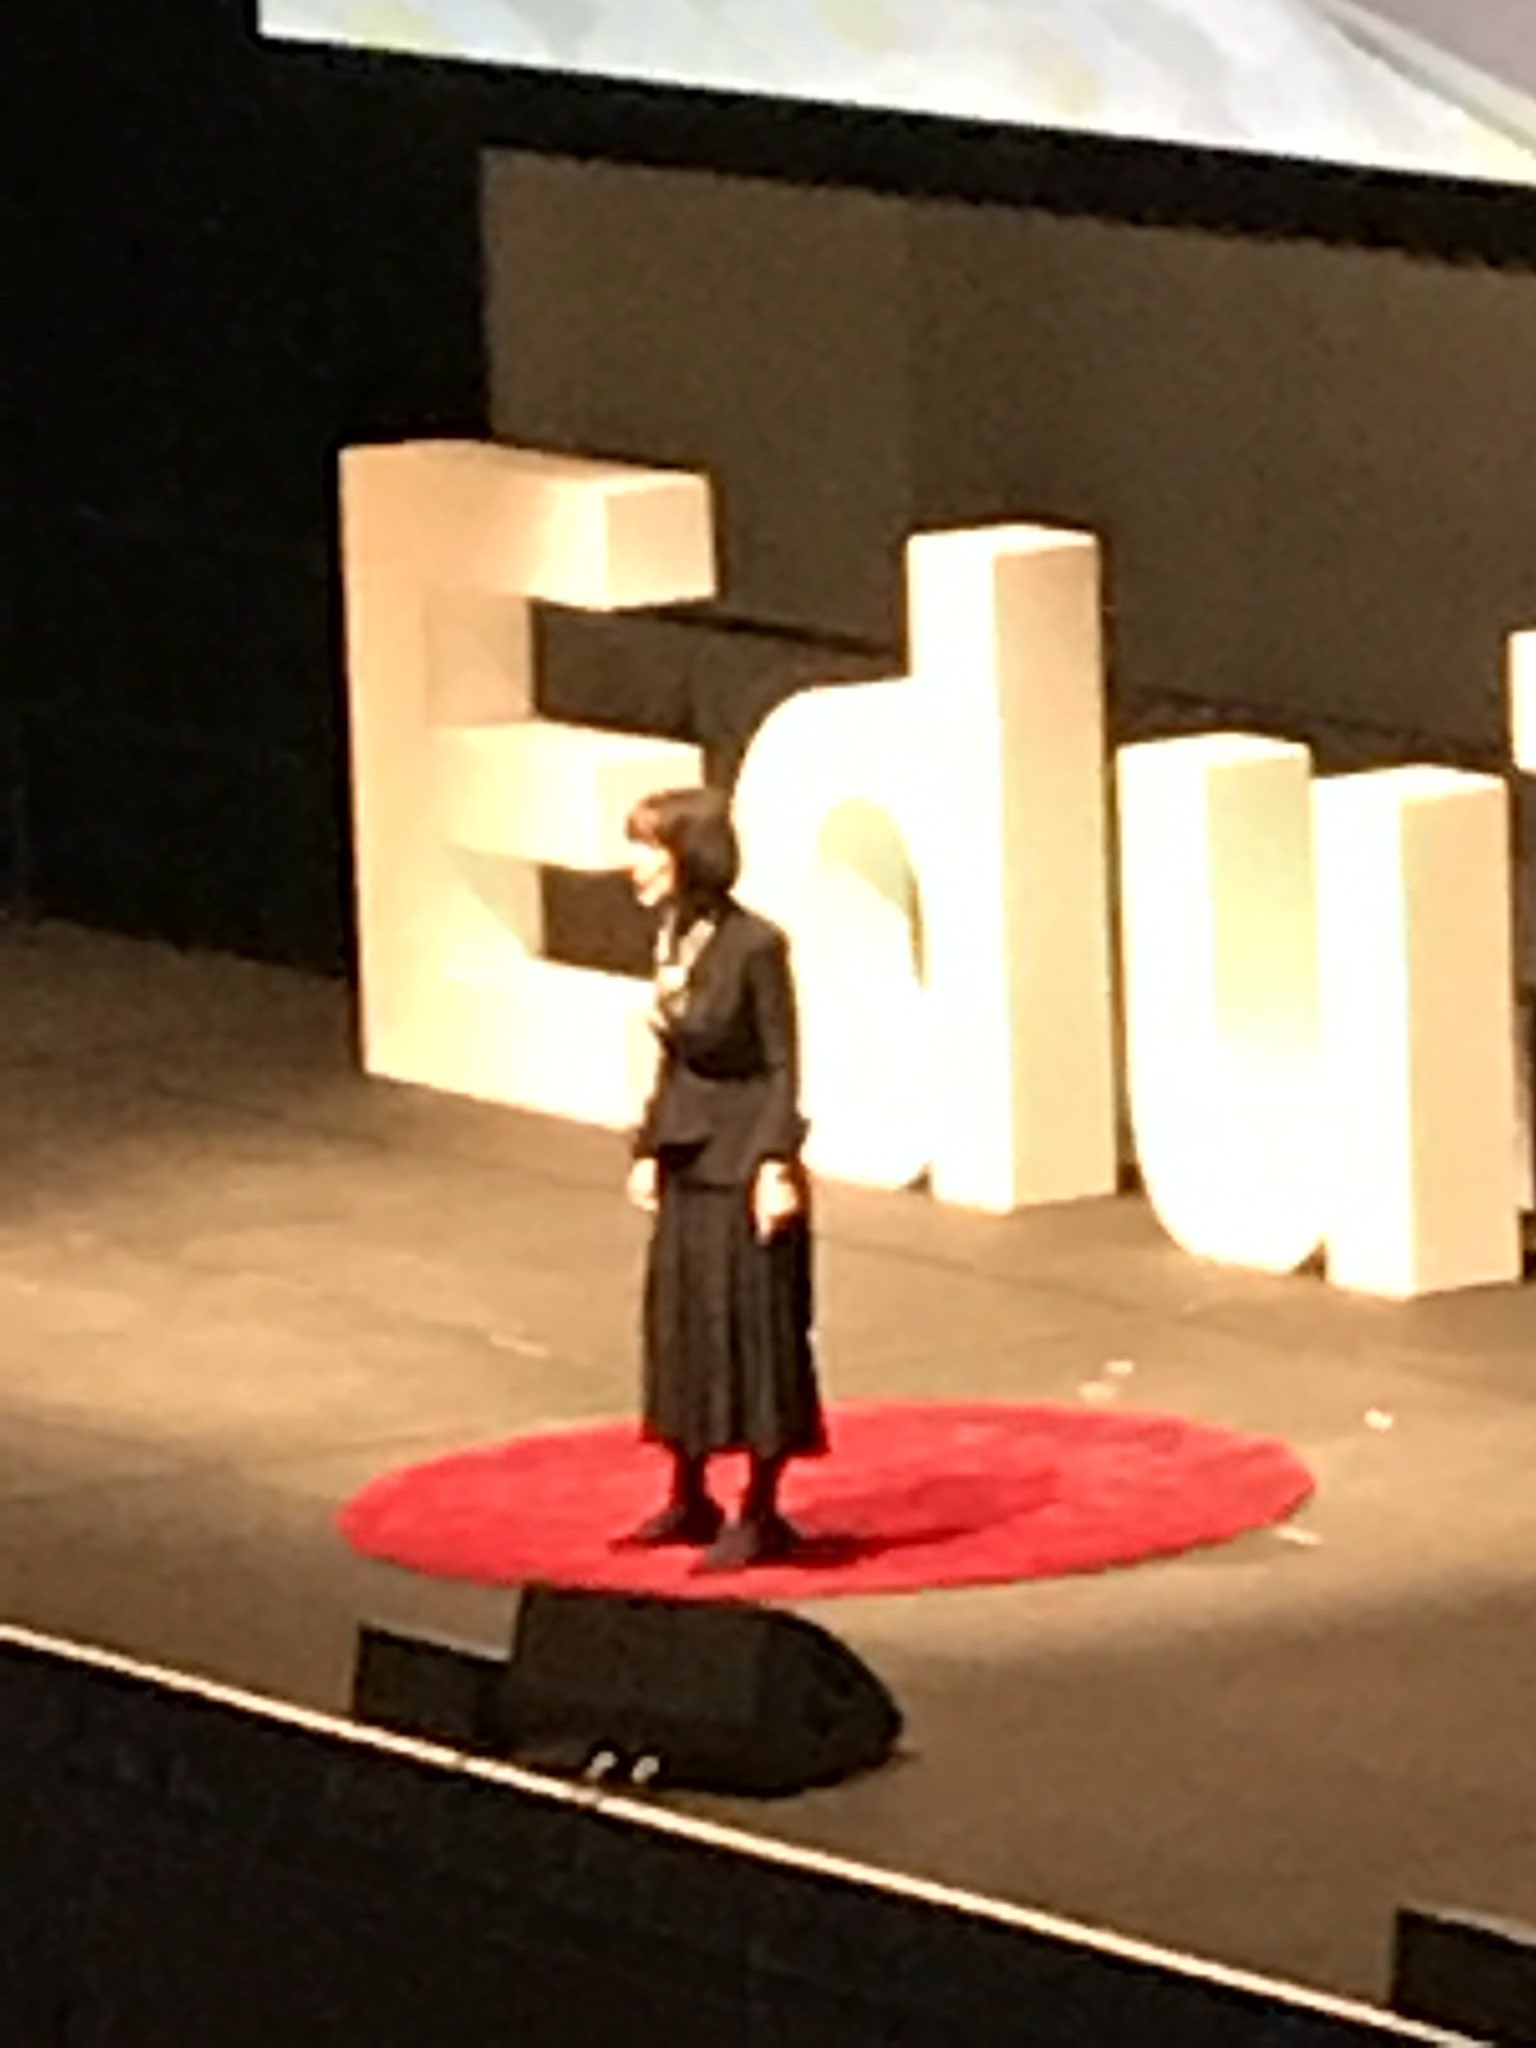 Hearing from Carol Dweck now about growth mindset! #EduTECHAU https://t.co/pZl5zcM3IG